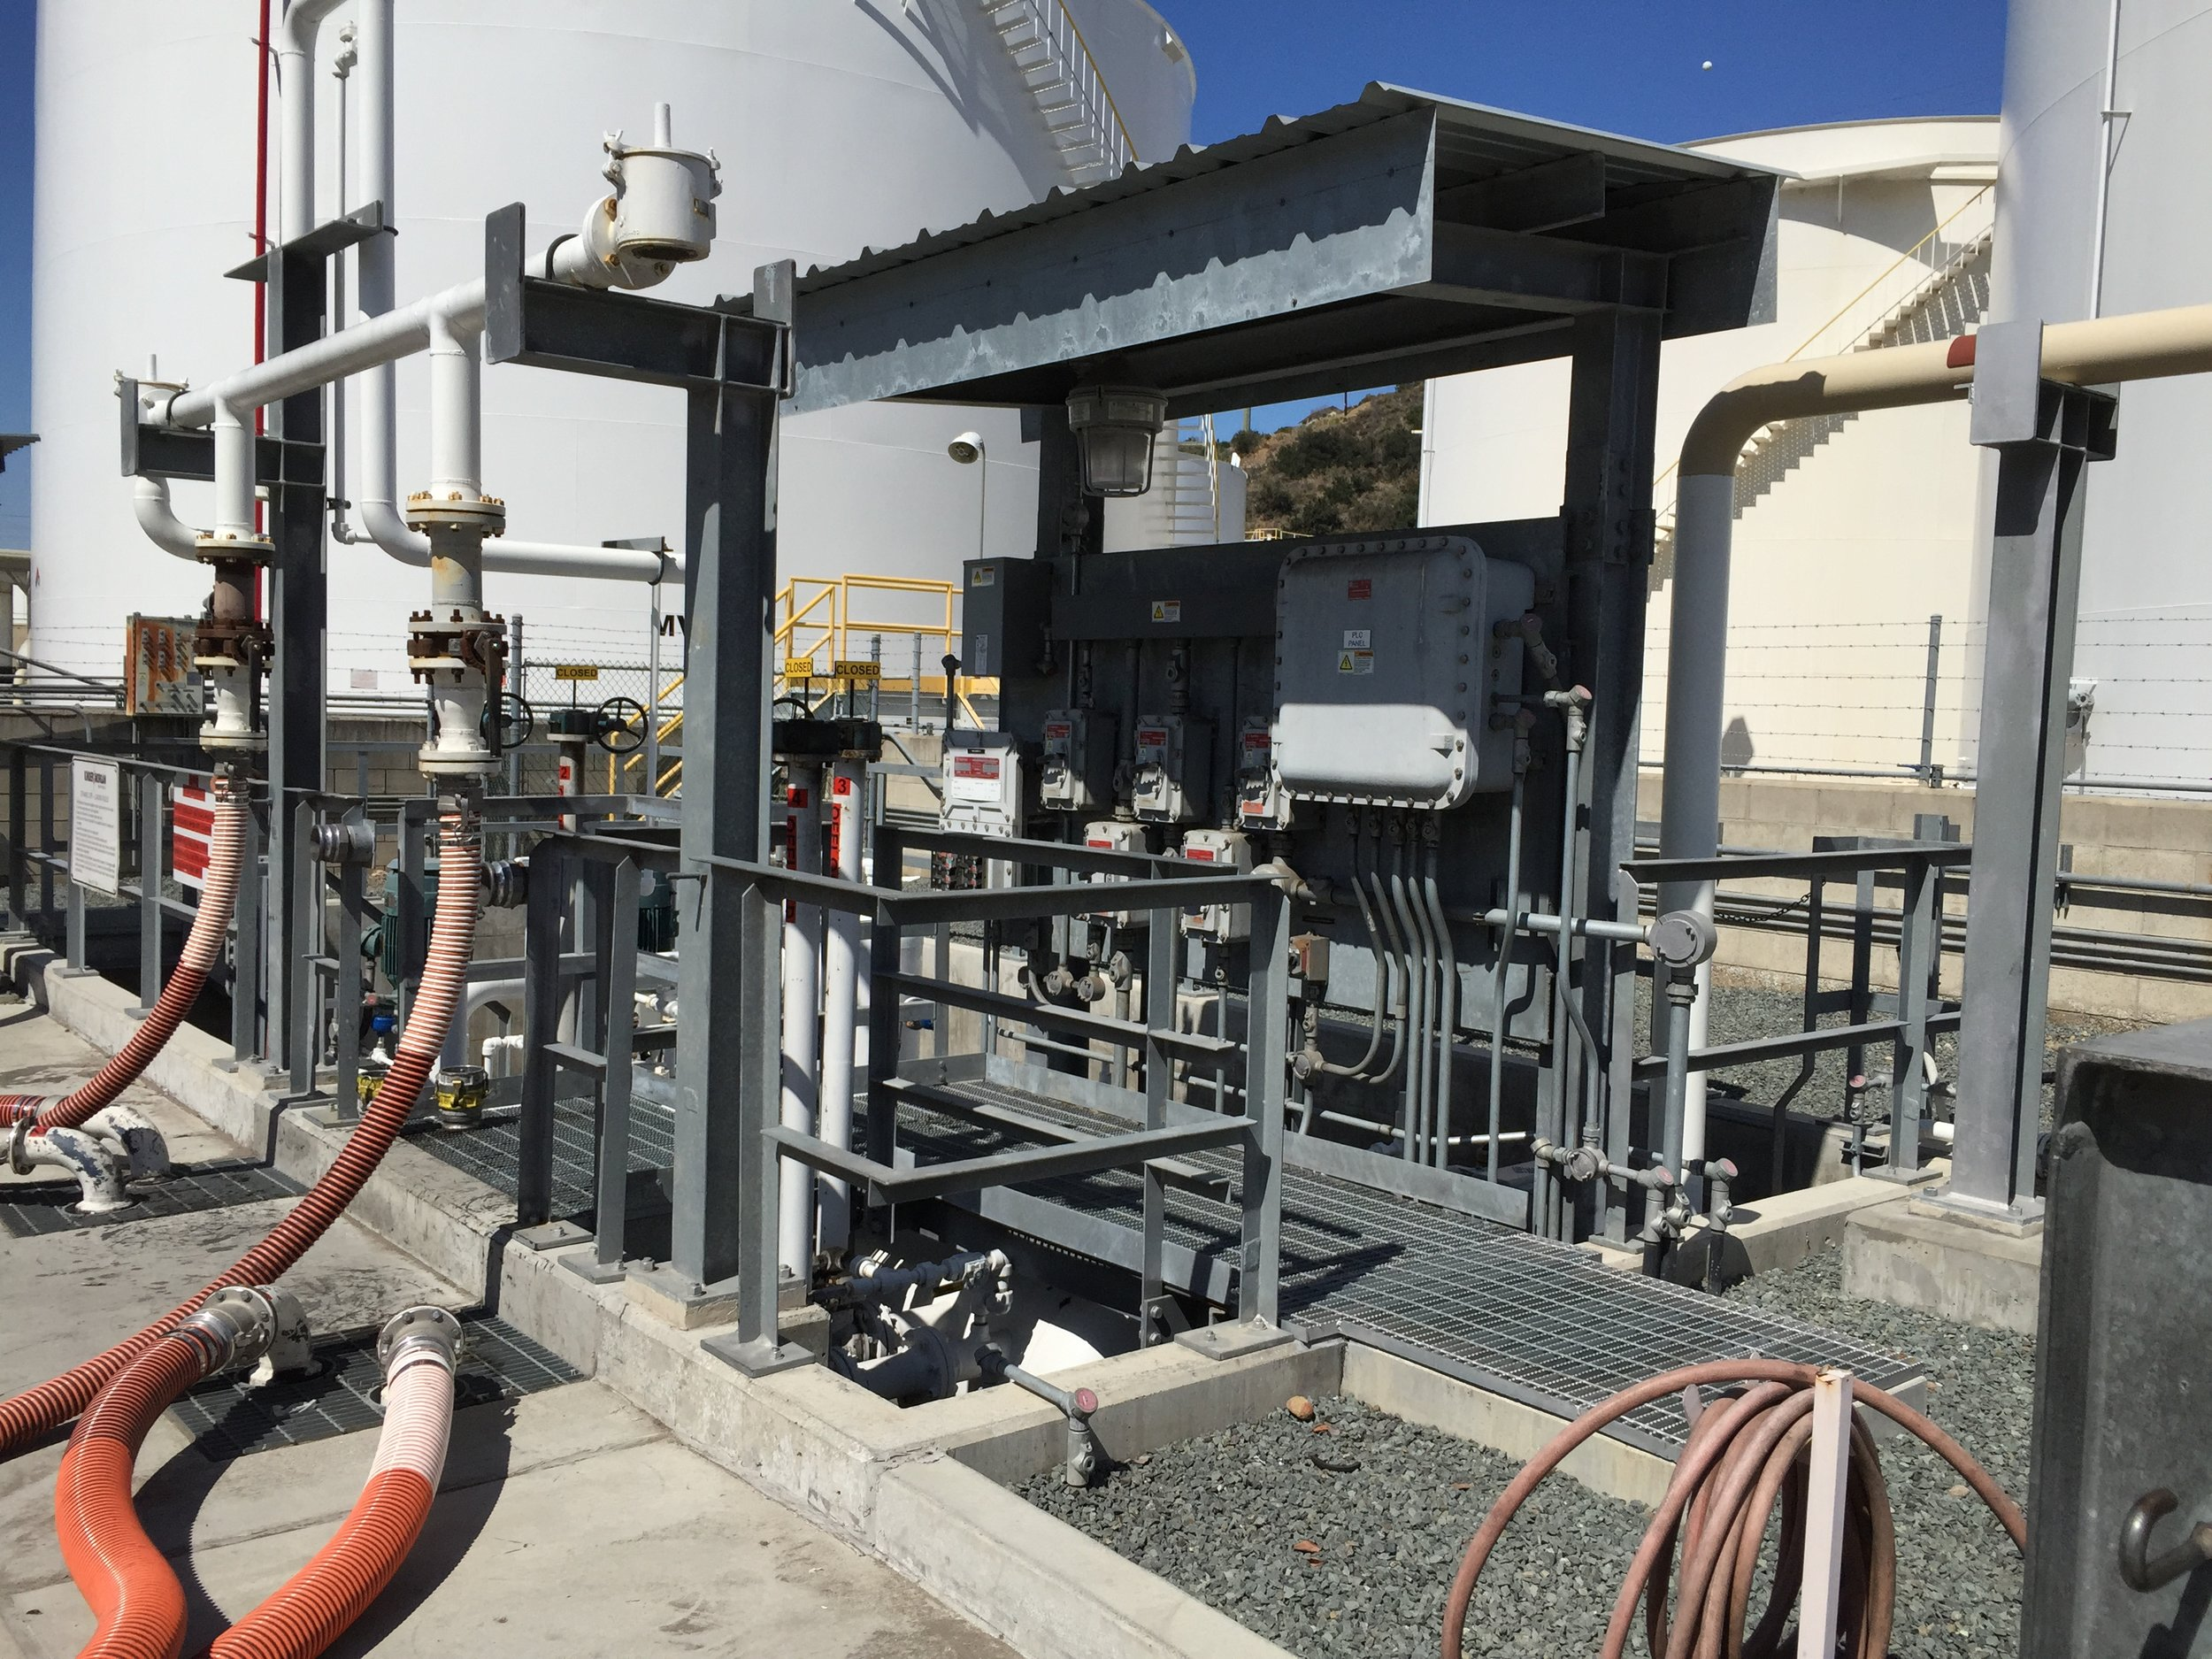 Exxon MobilMission Valley Automation Skid Project - www.coursovie.com